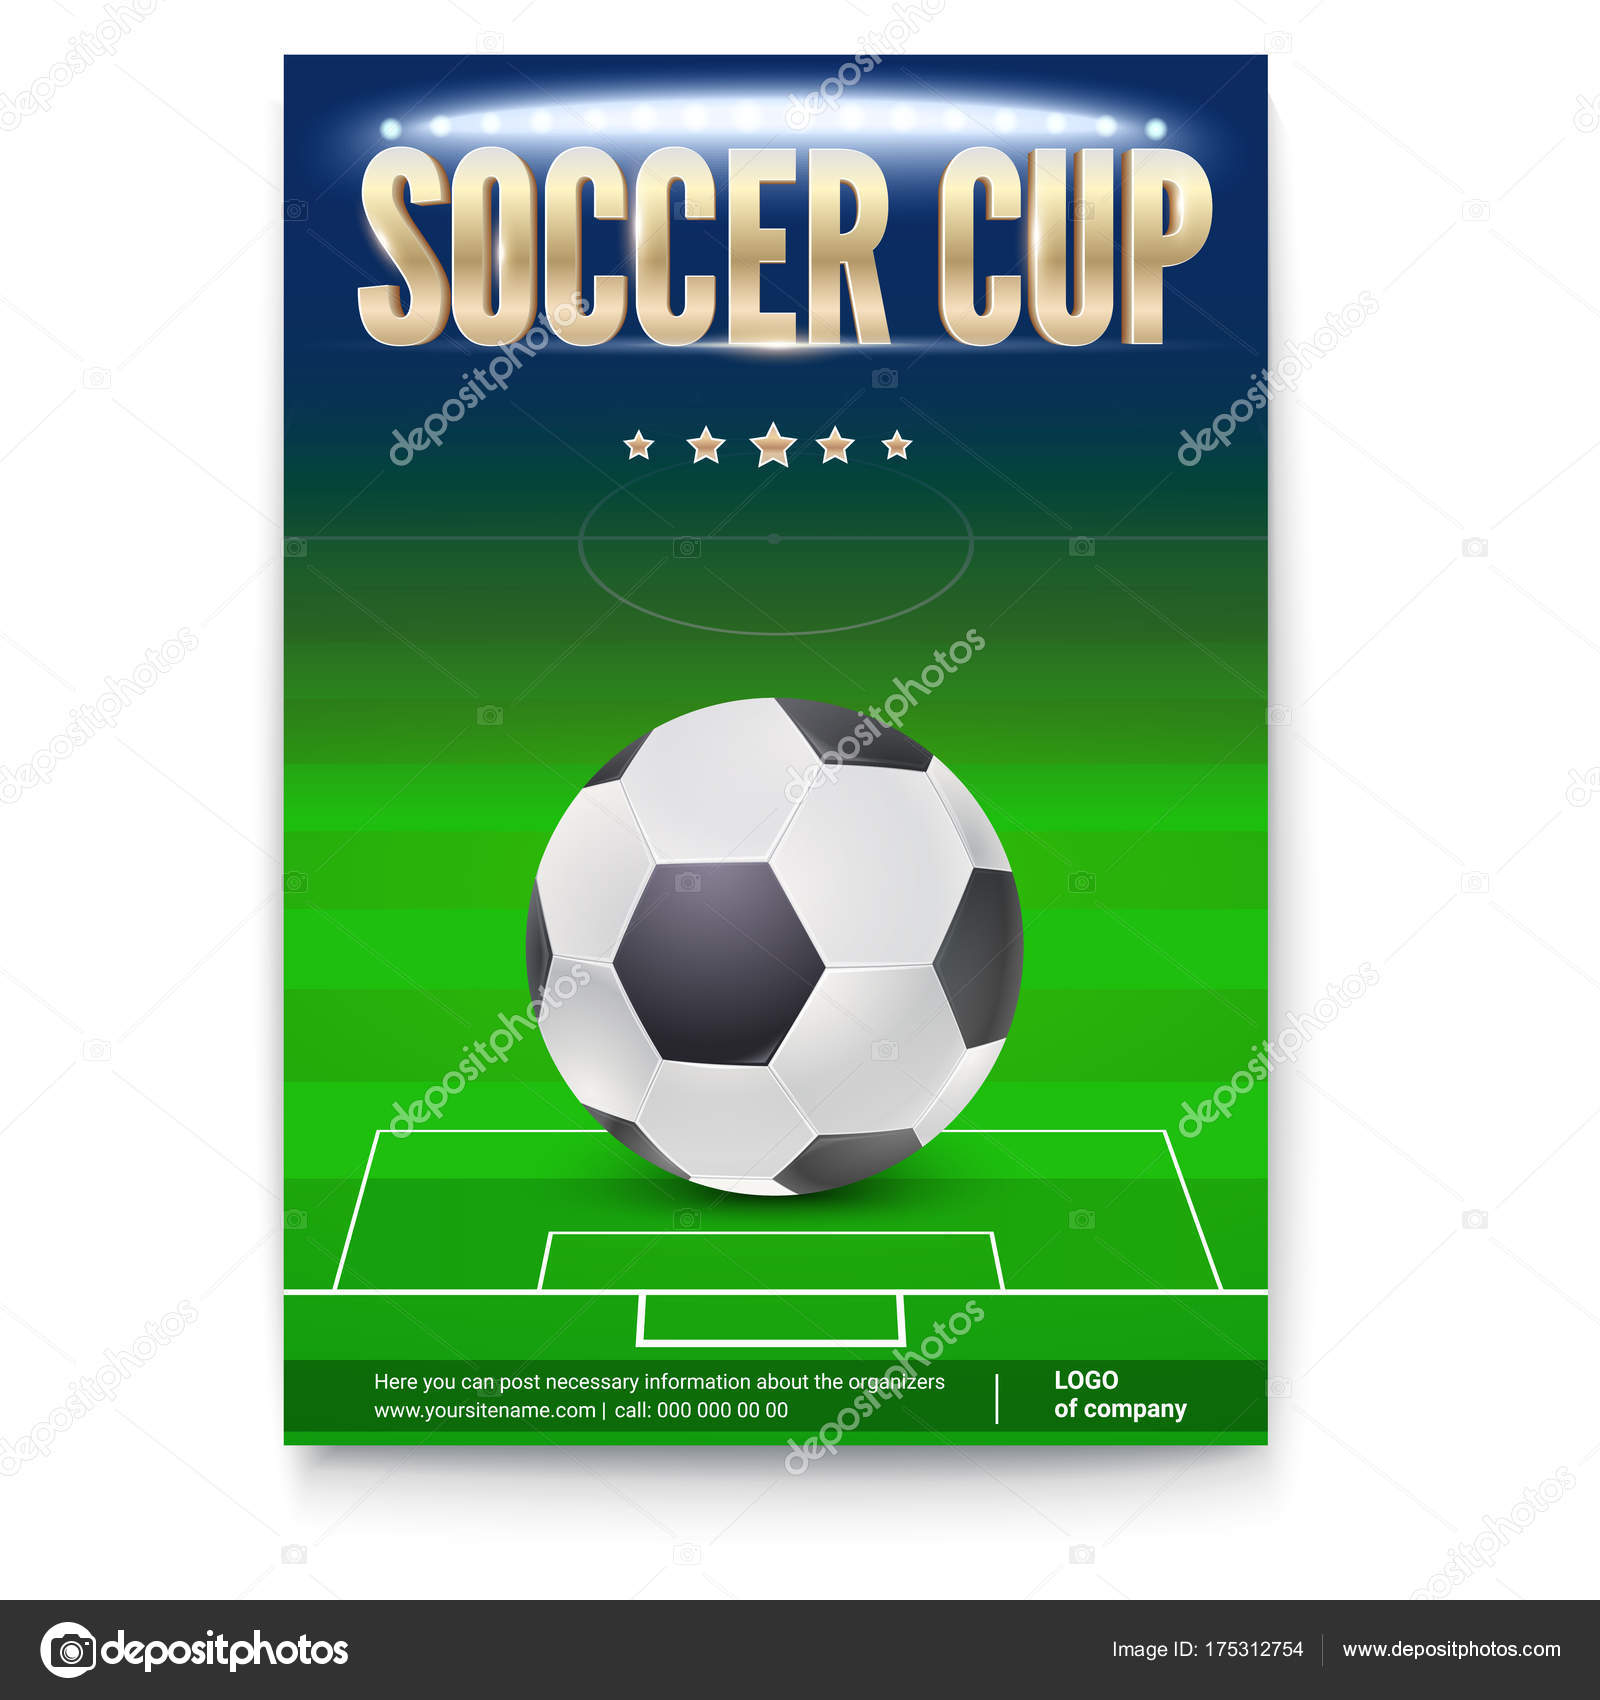 Soccer Cup Poster Template With Place For Information And Emblem Of Participants Night Football Stadium In